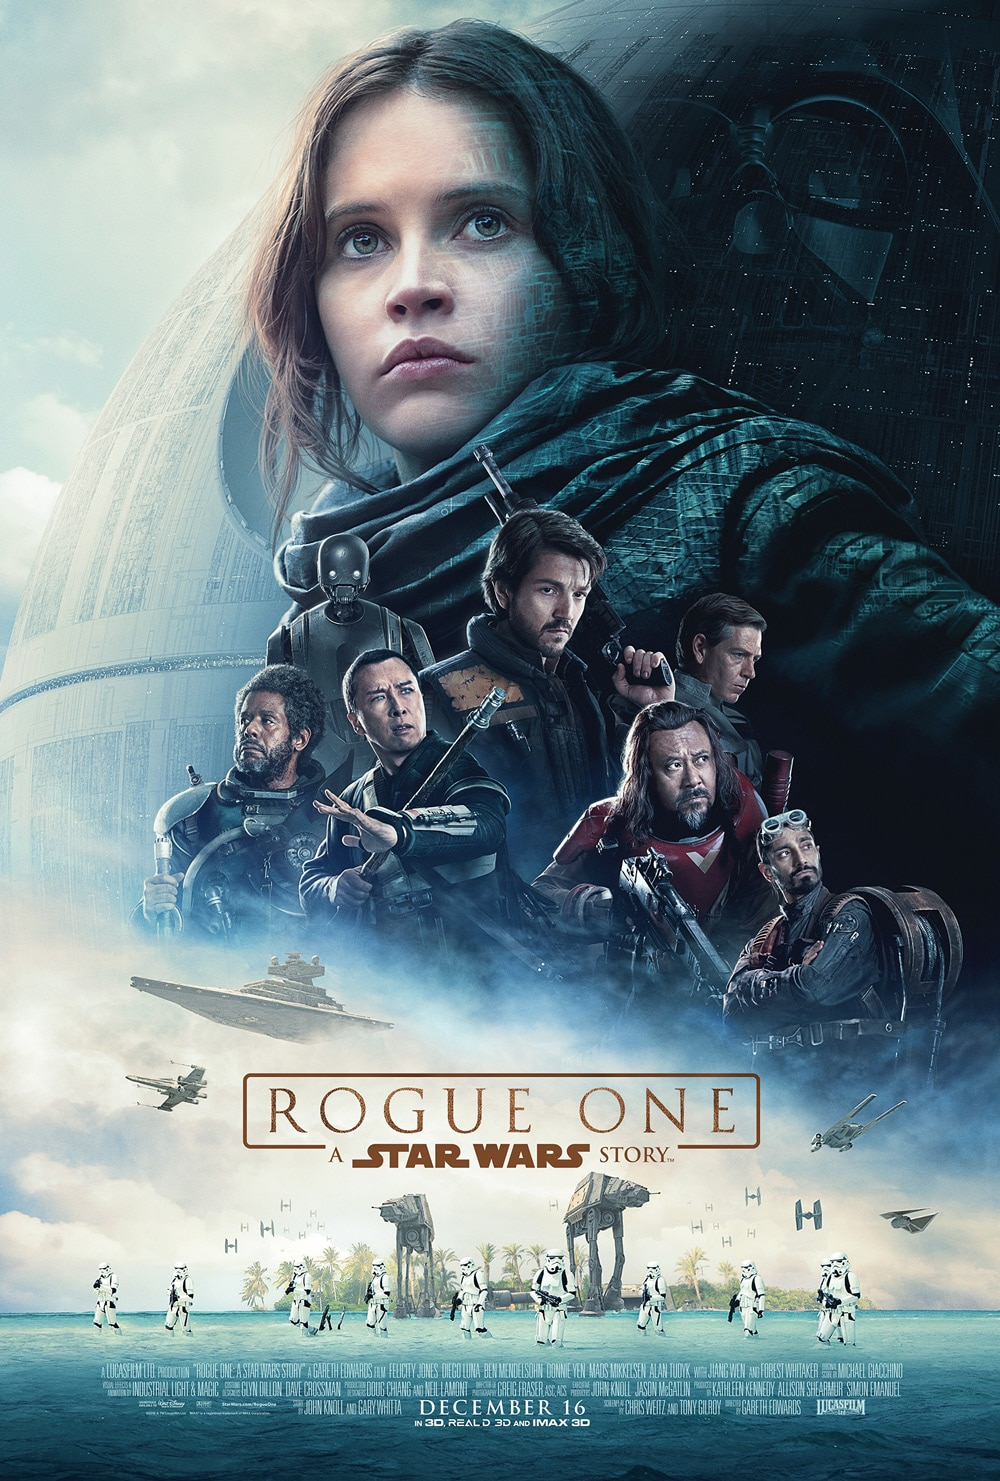 Star Wars: The Last Jedi (English) full movie 1080p download utorrent